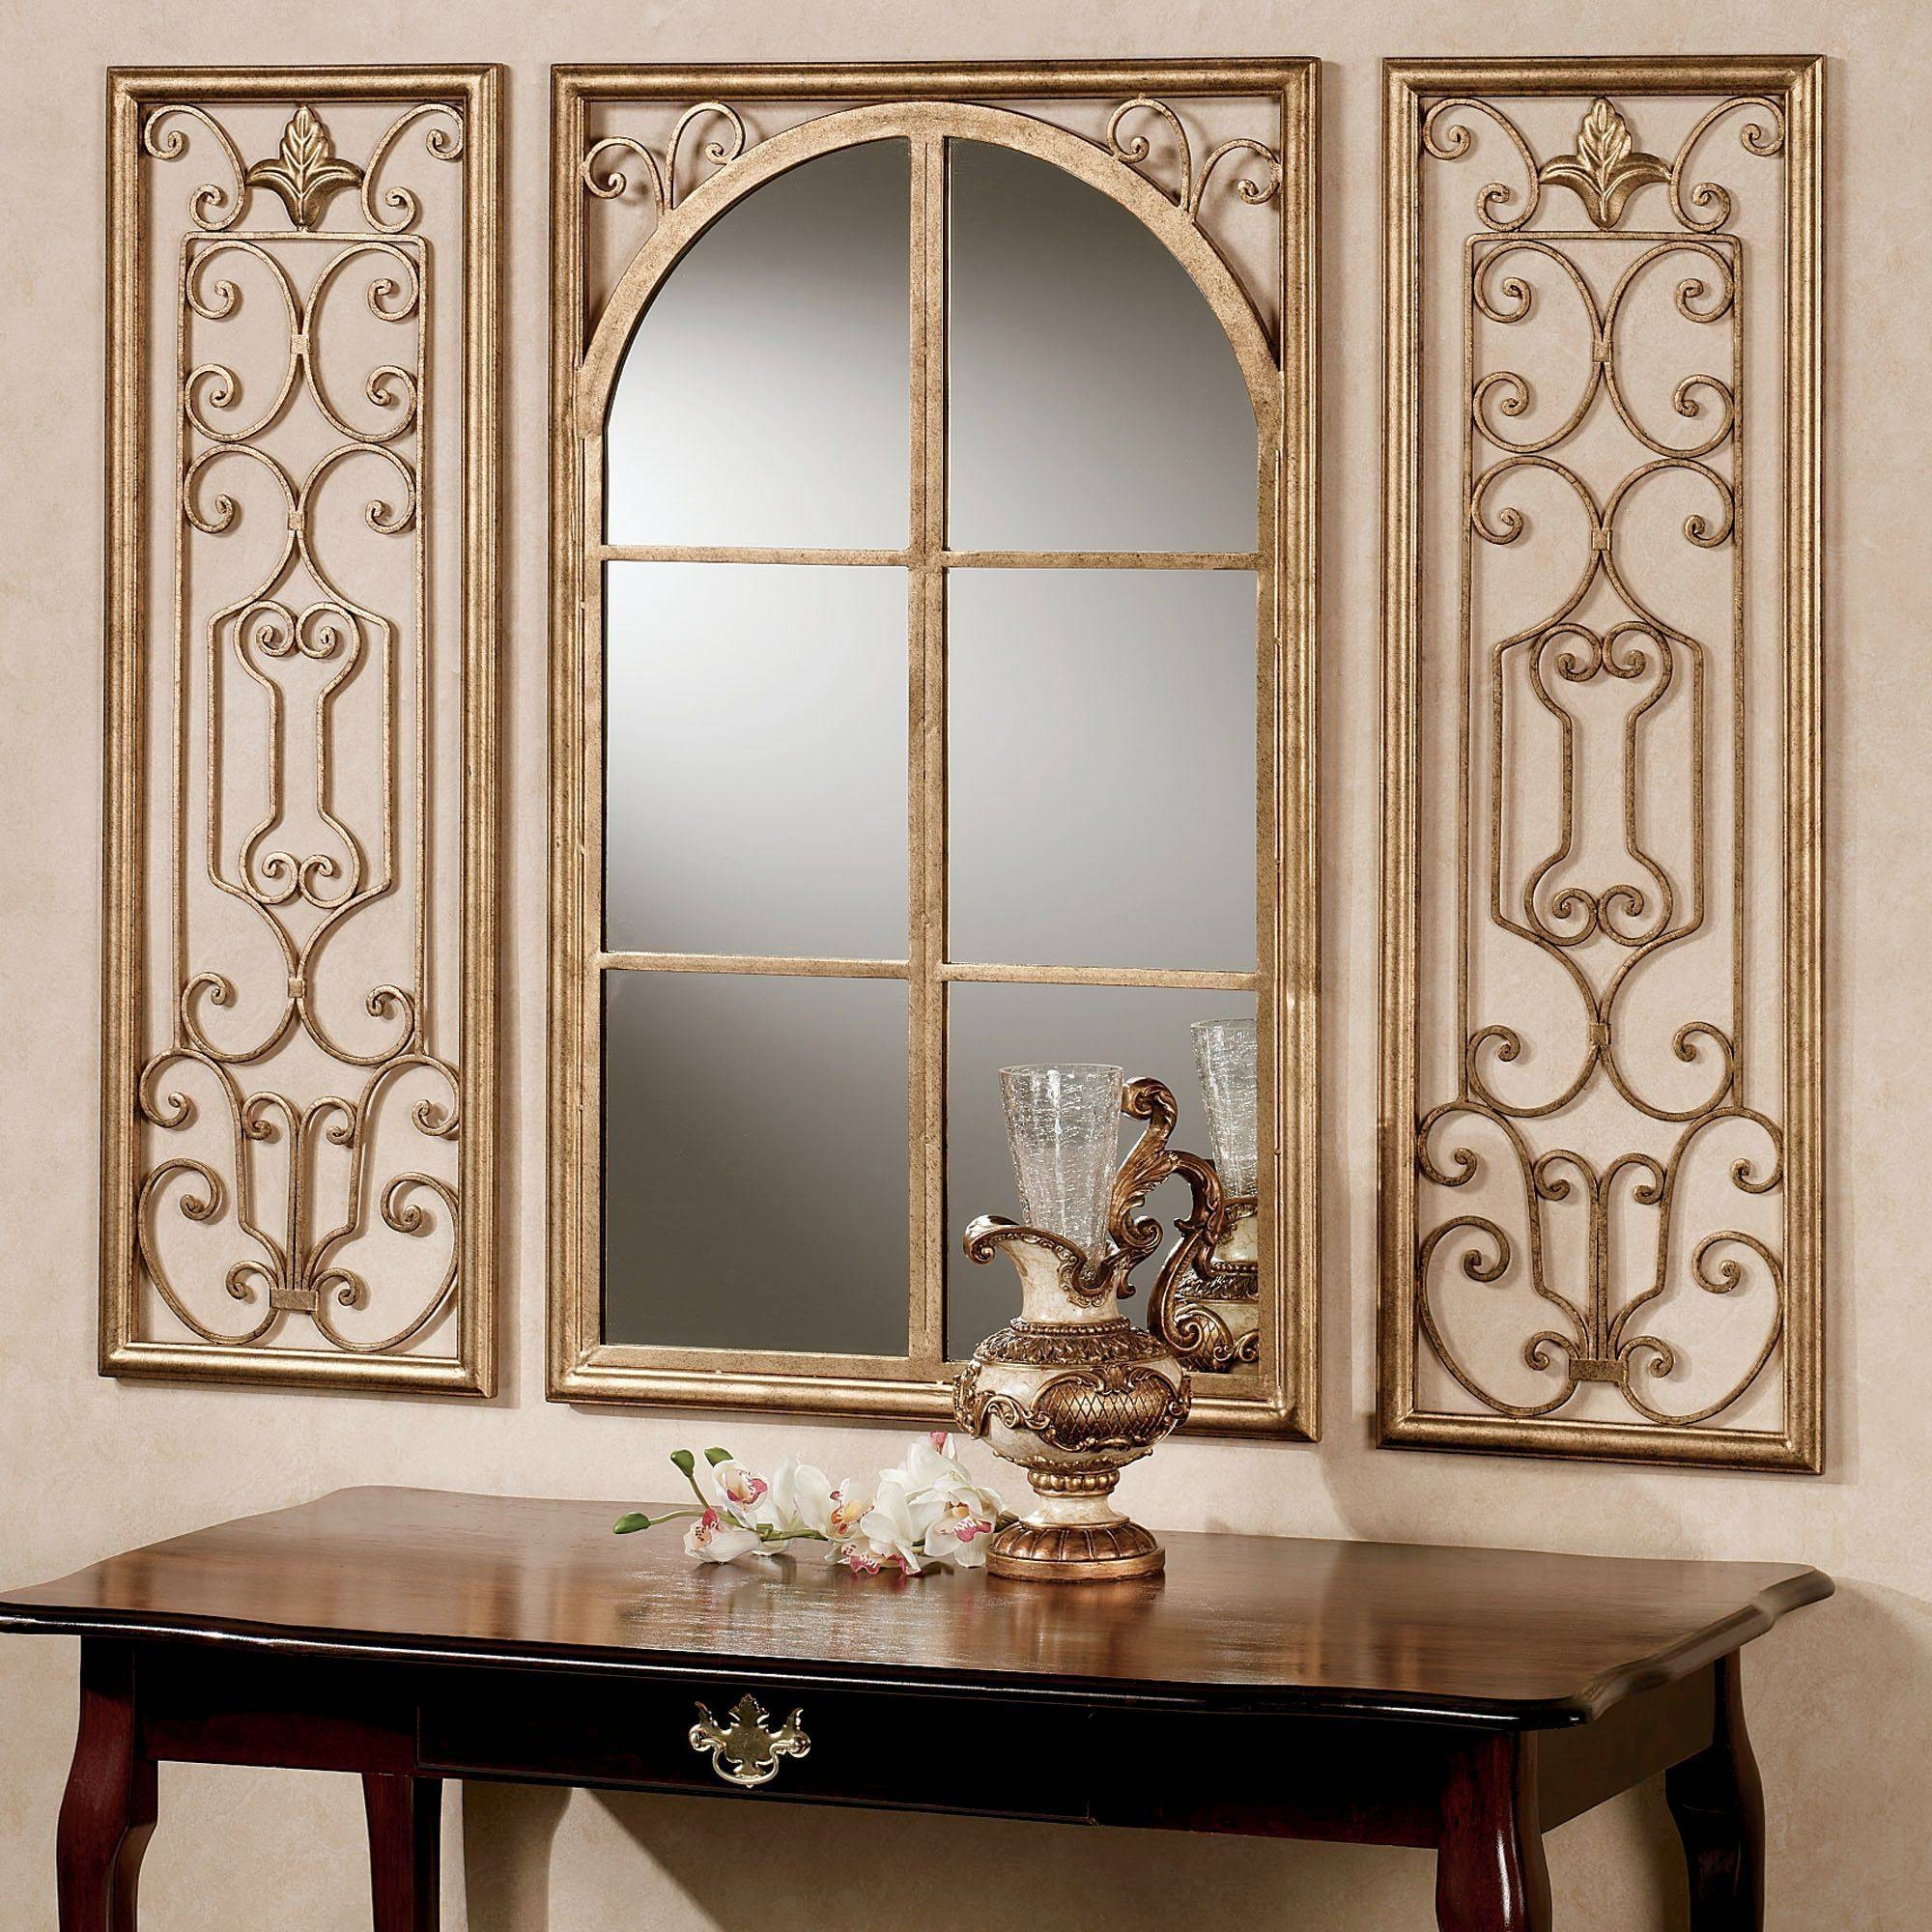 Provence Antique Gold Finish Wall Mirror Set throughout Antique Gold Mirrors (Image 21 of 25)